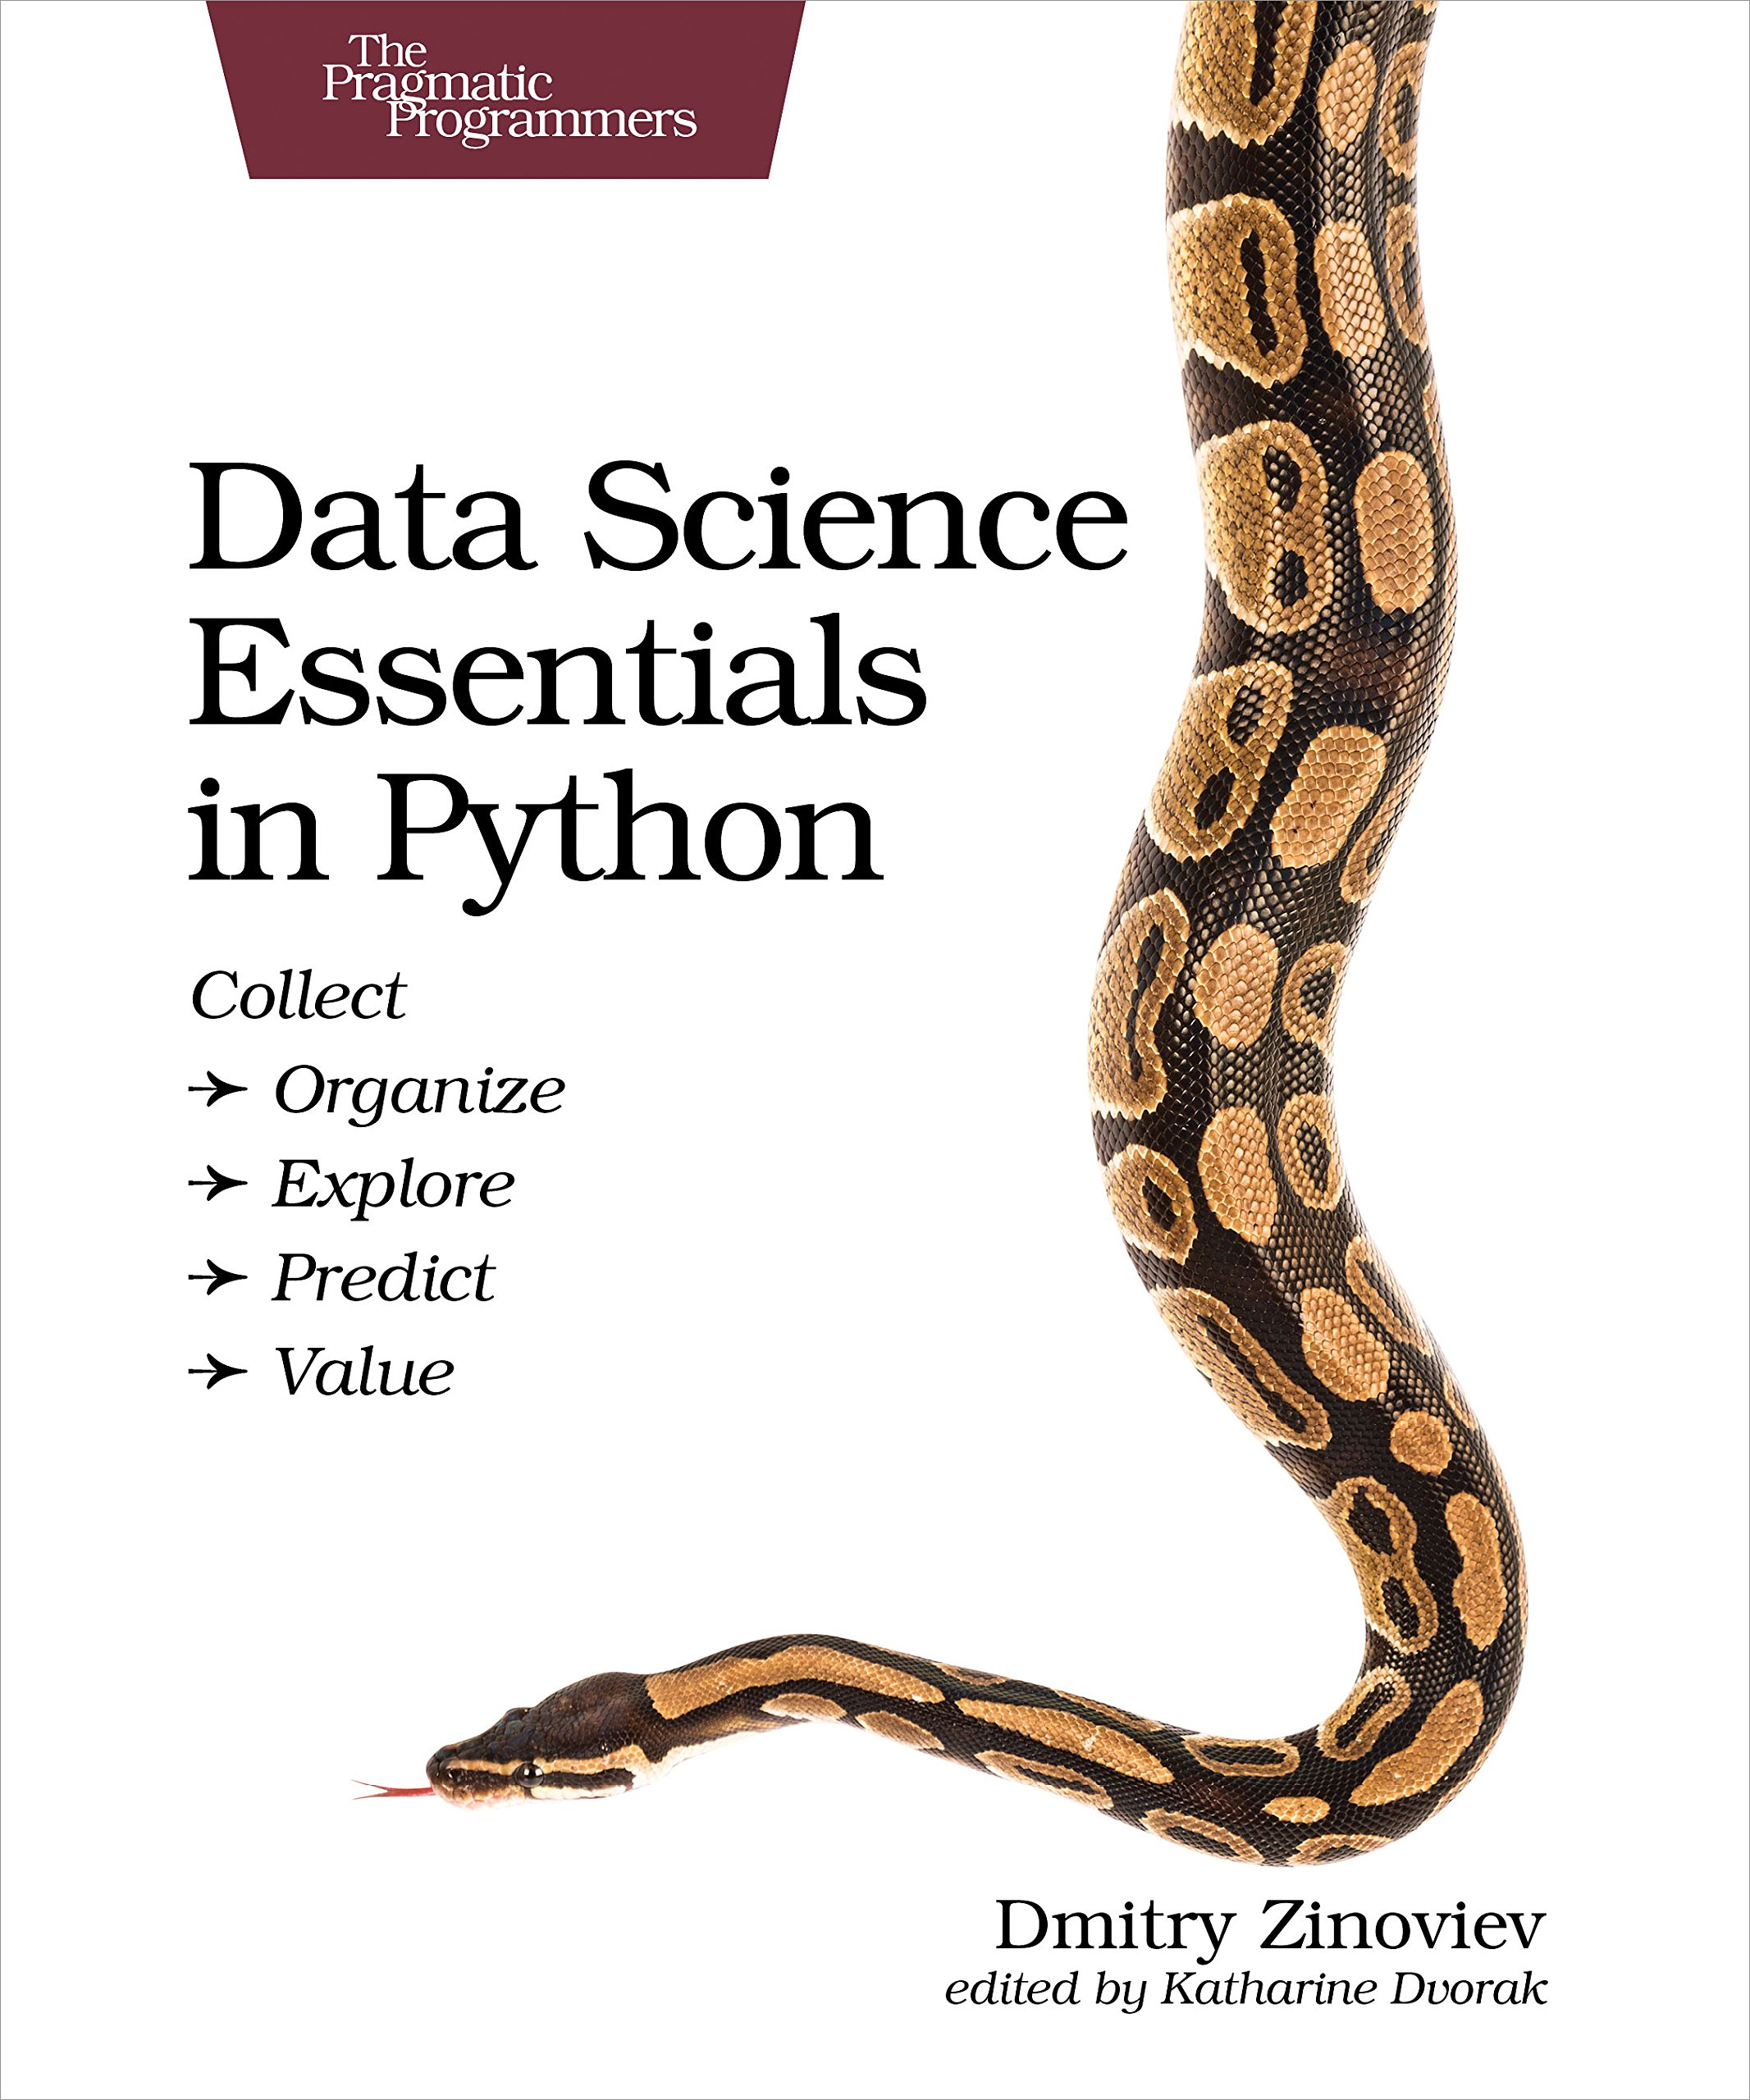 Data Science Essentials in Python: Collect - Organize - Explore